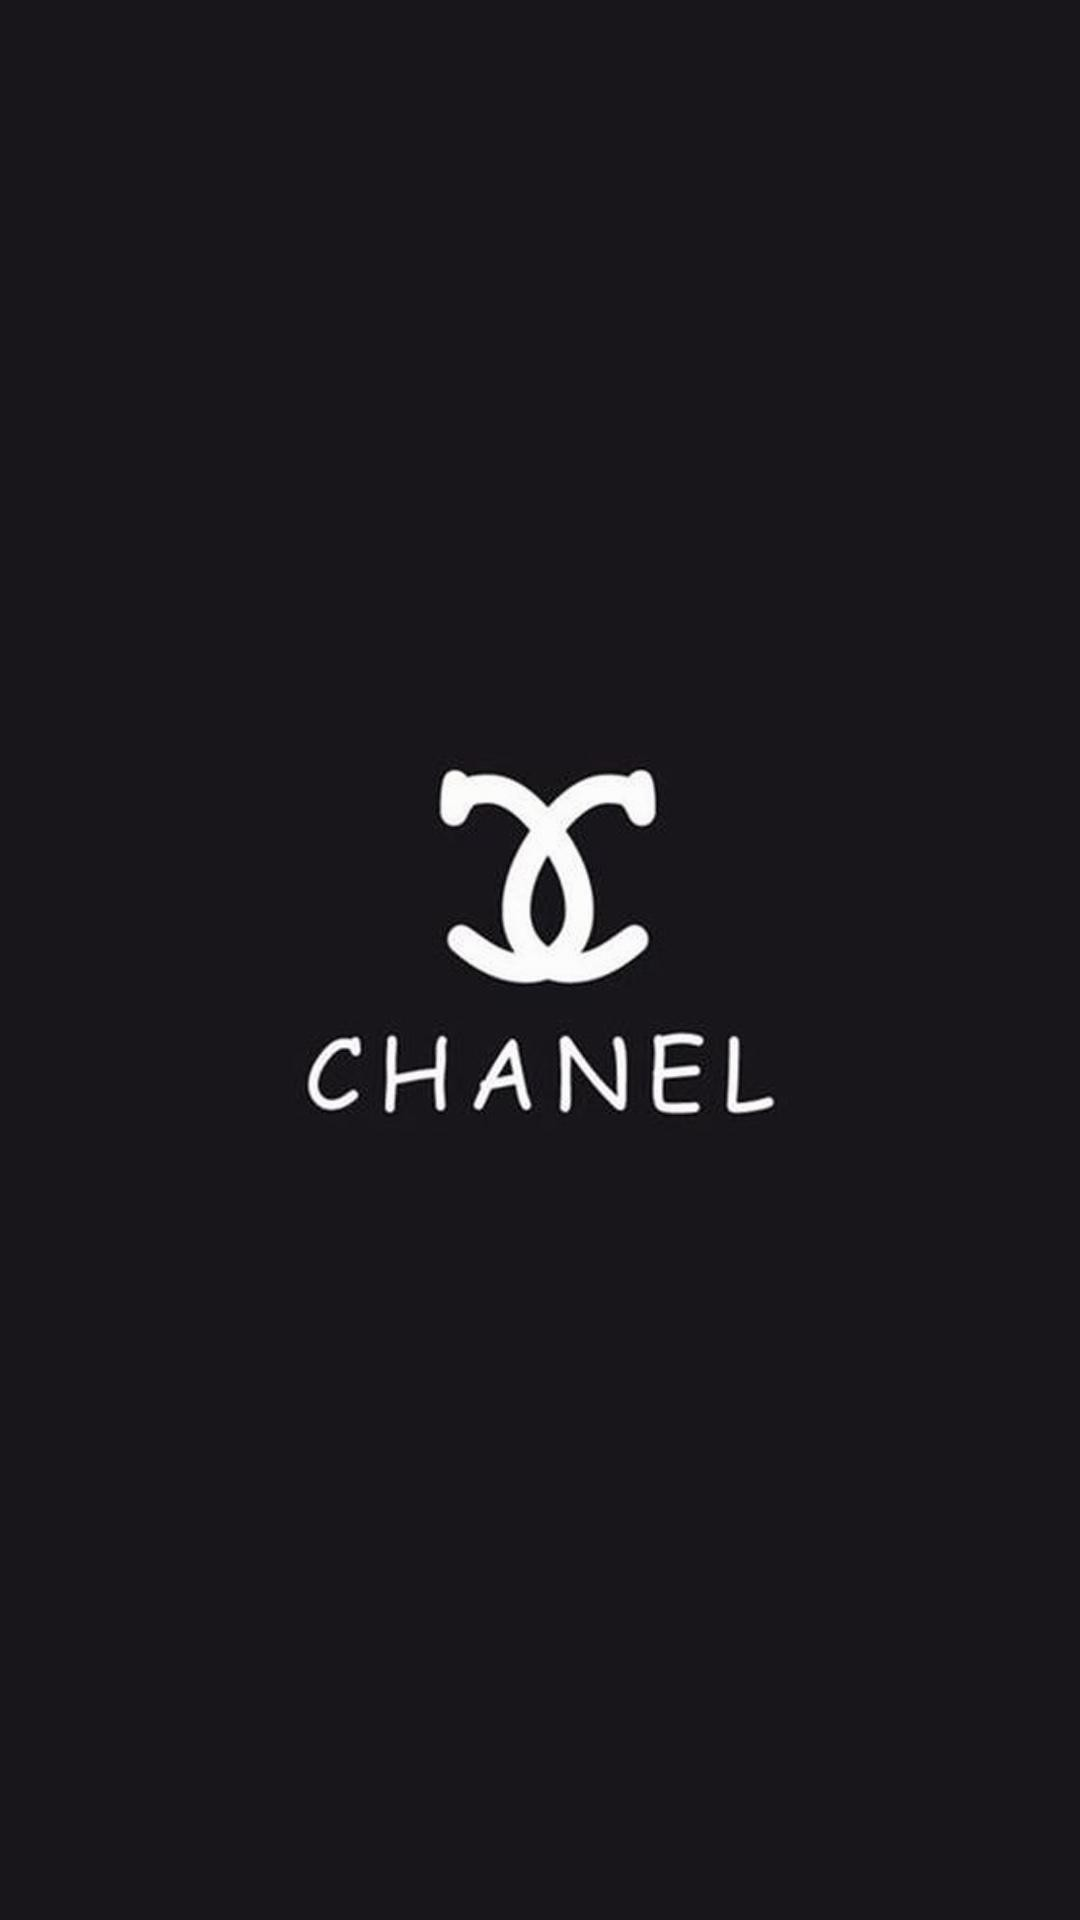 1080x1920 wallpaper.wiki-Chanel-iPhone-5s-wallpapers-PIC-WPC007219